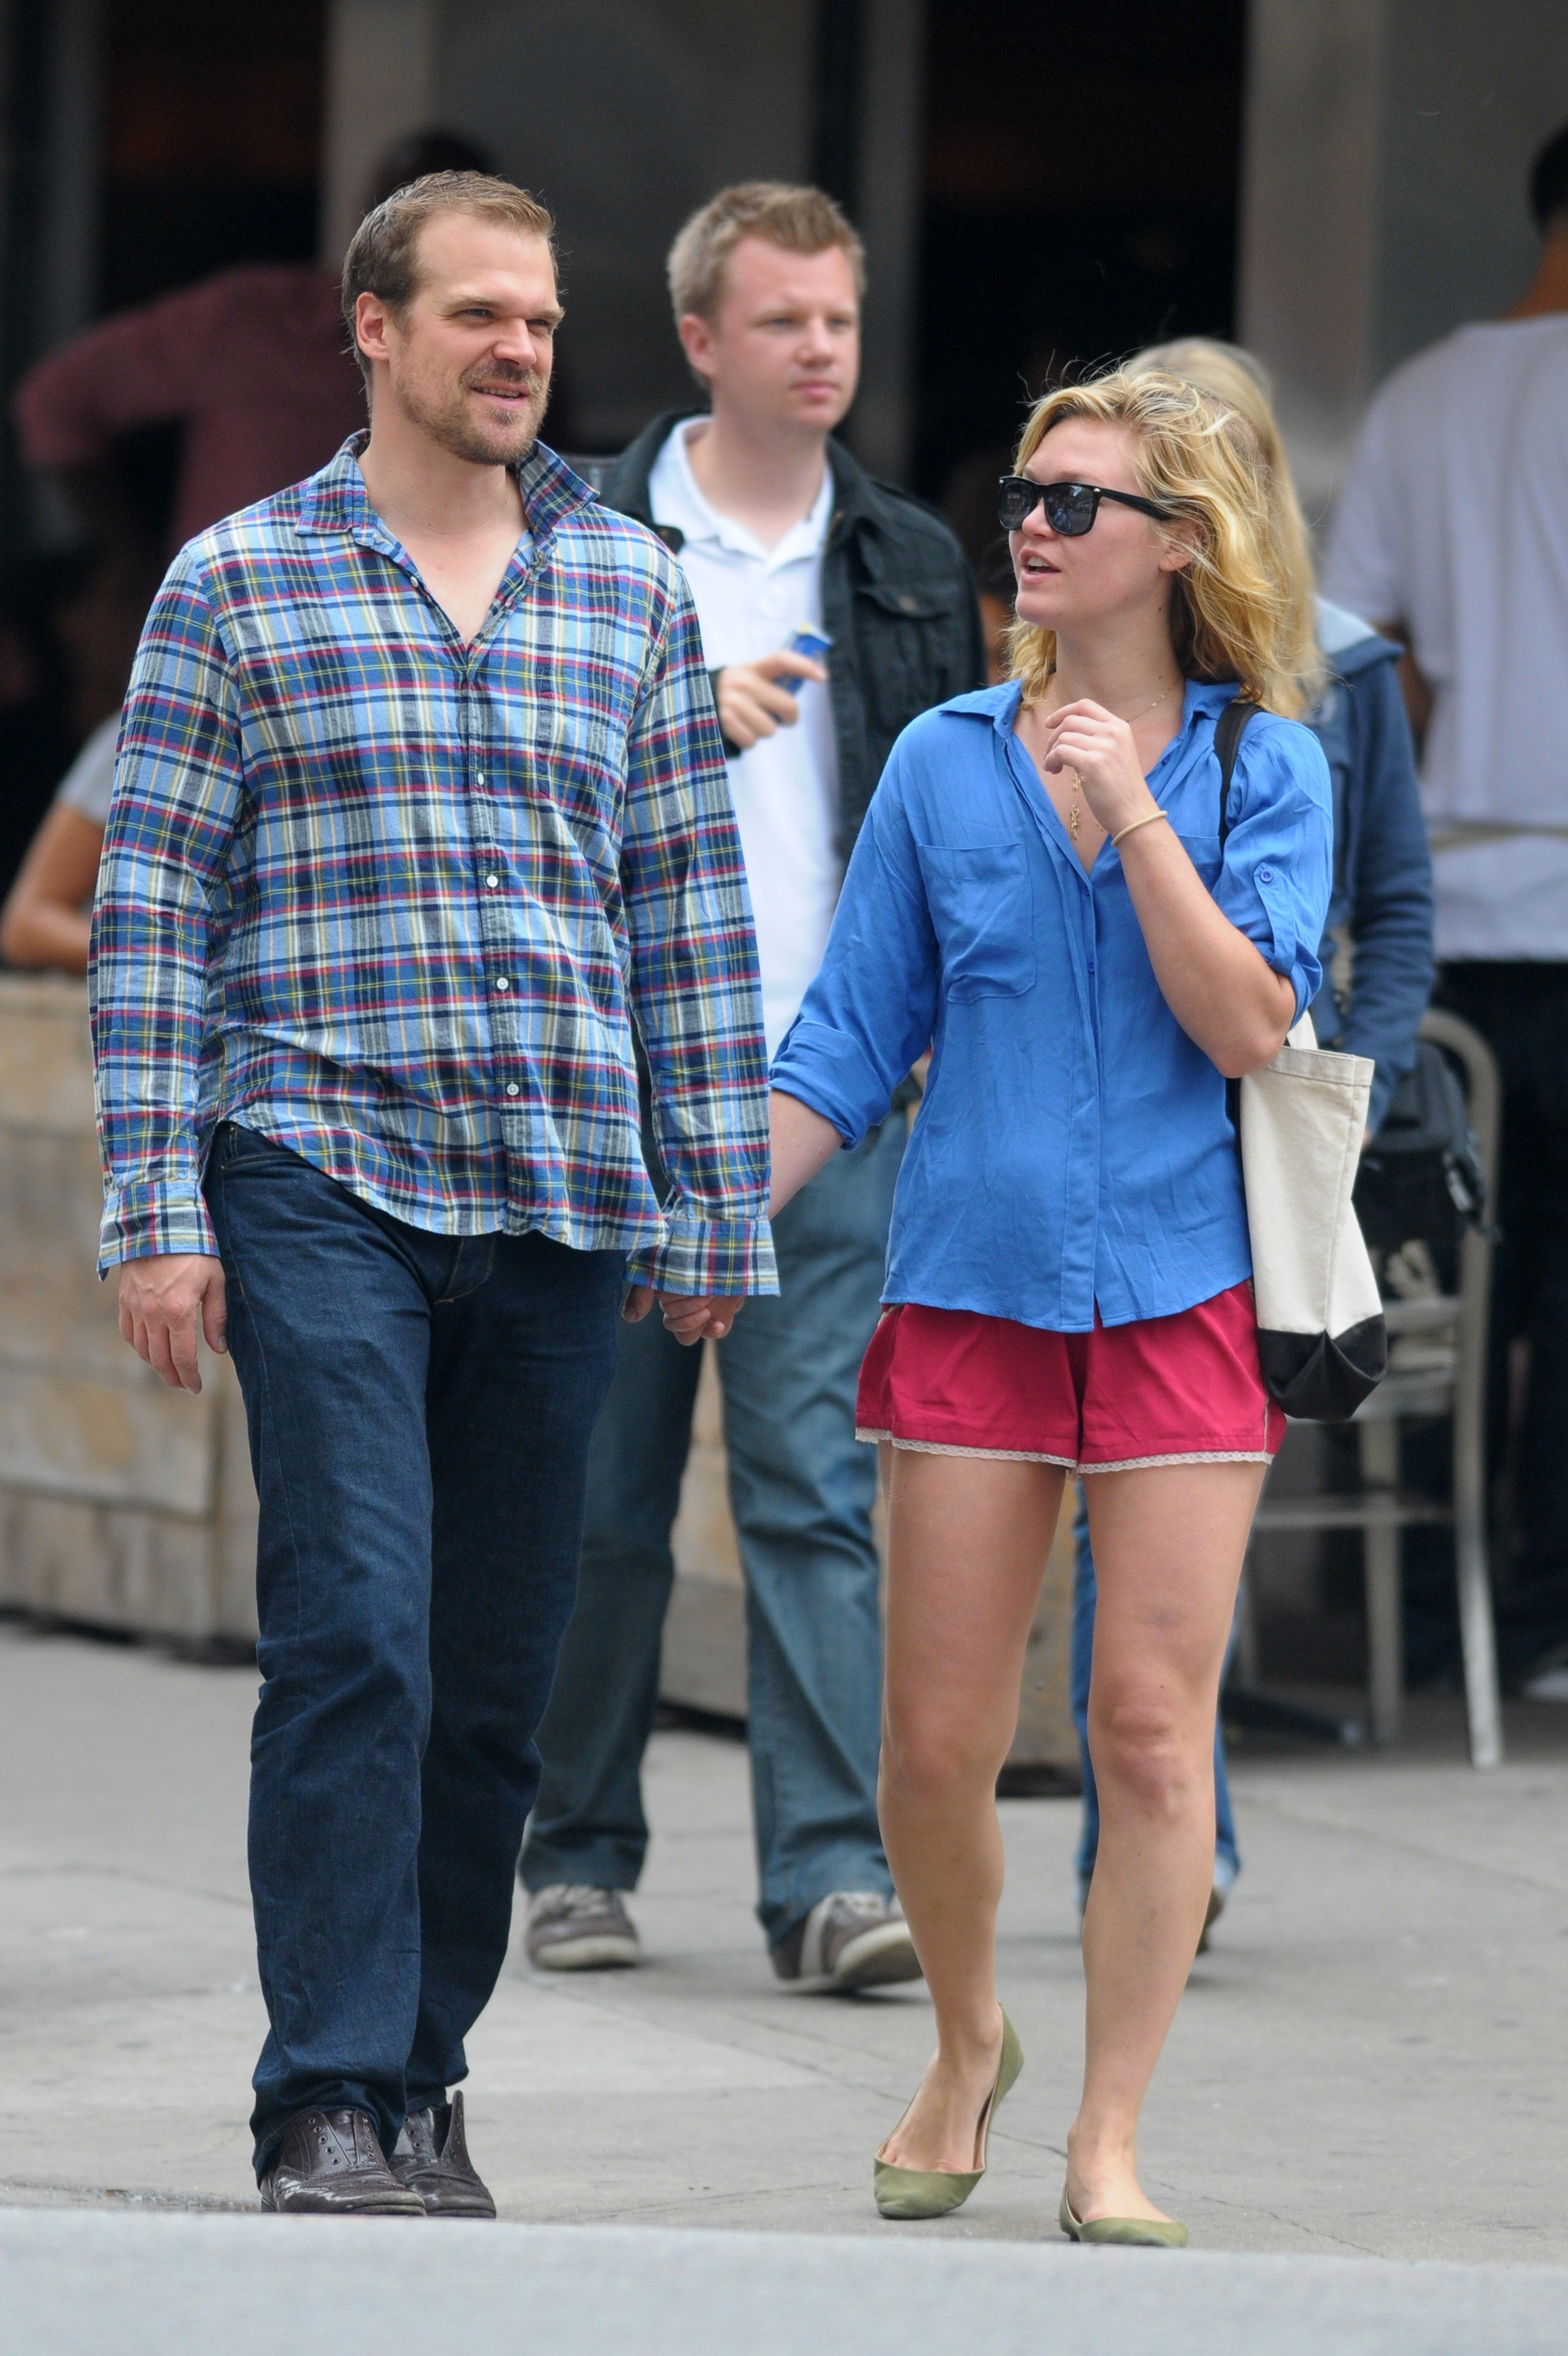 663804566_Julia_Stiles_Out_about_NYC2_122_466lo.jpg